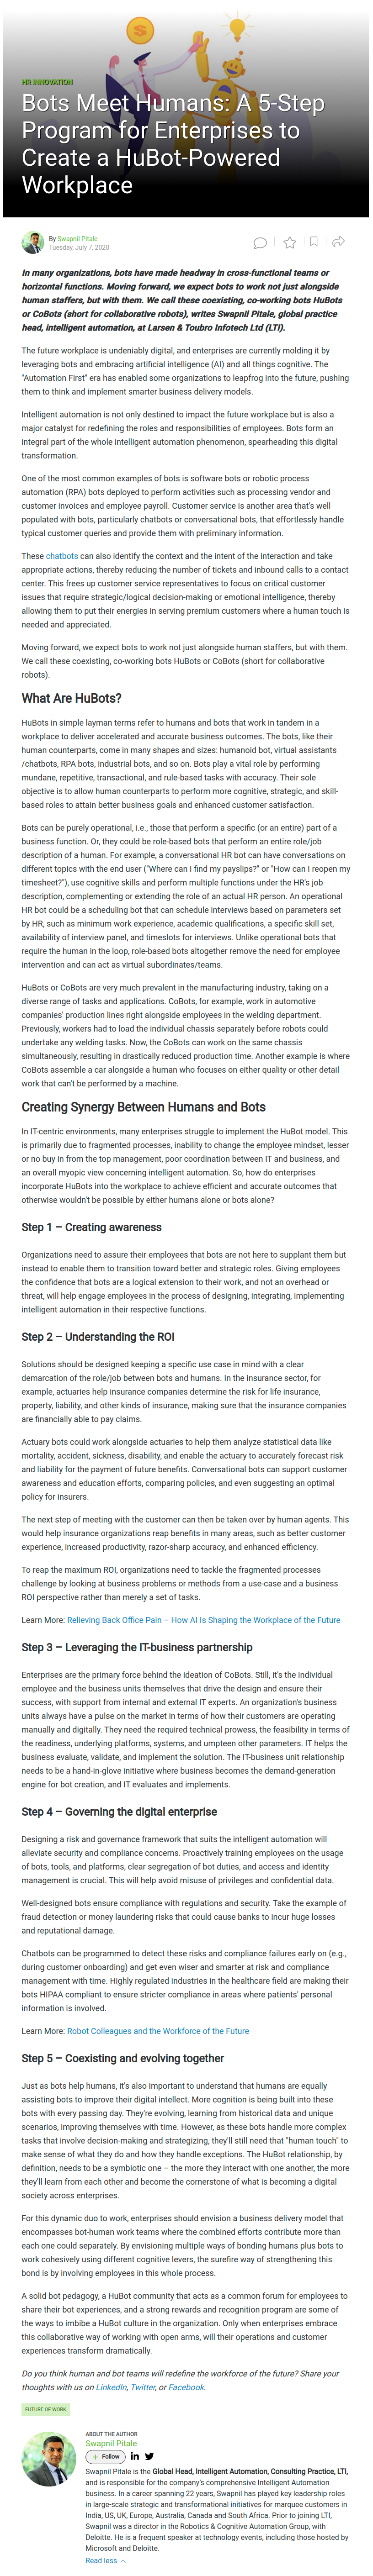 Bots Meet Humans: A 5-Step Program for Enterprises to Create a HuBot-Powered Workplace